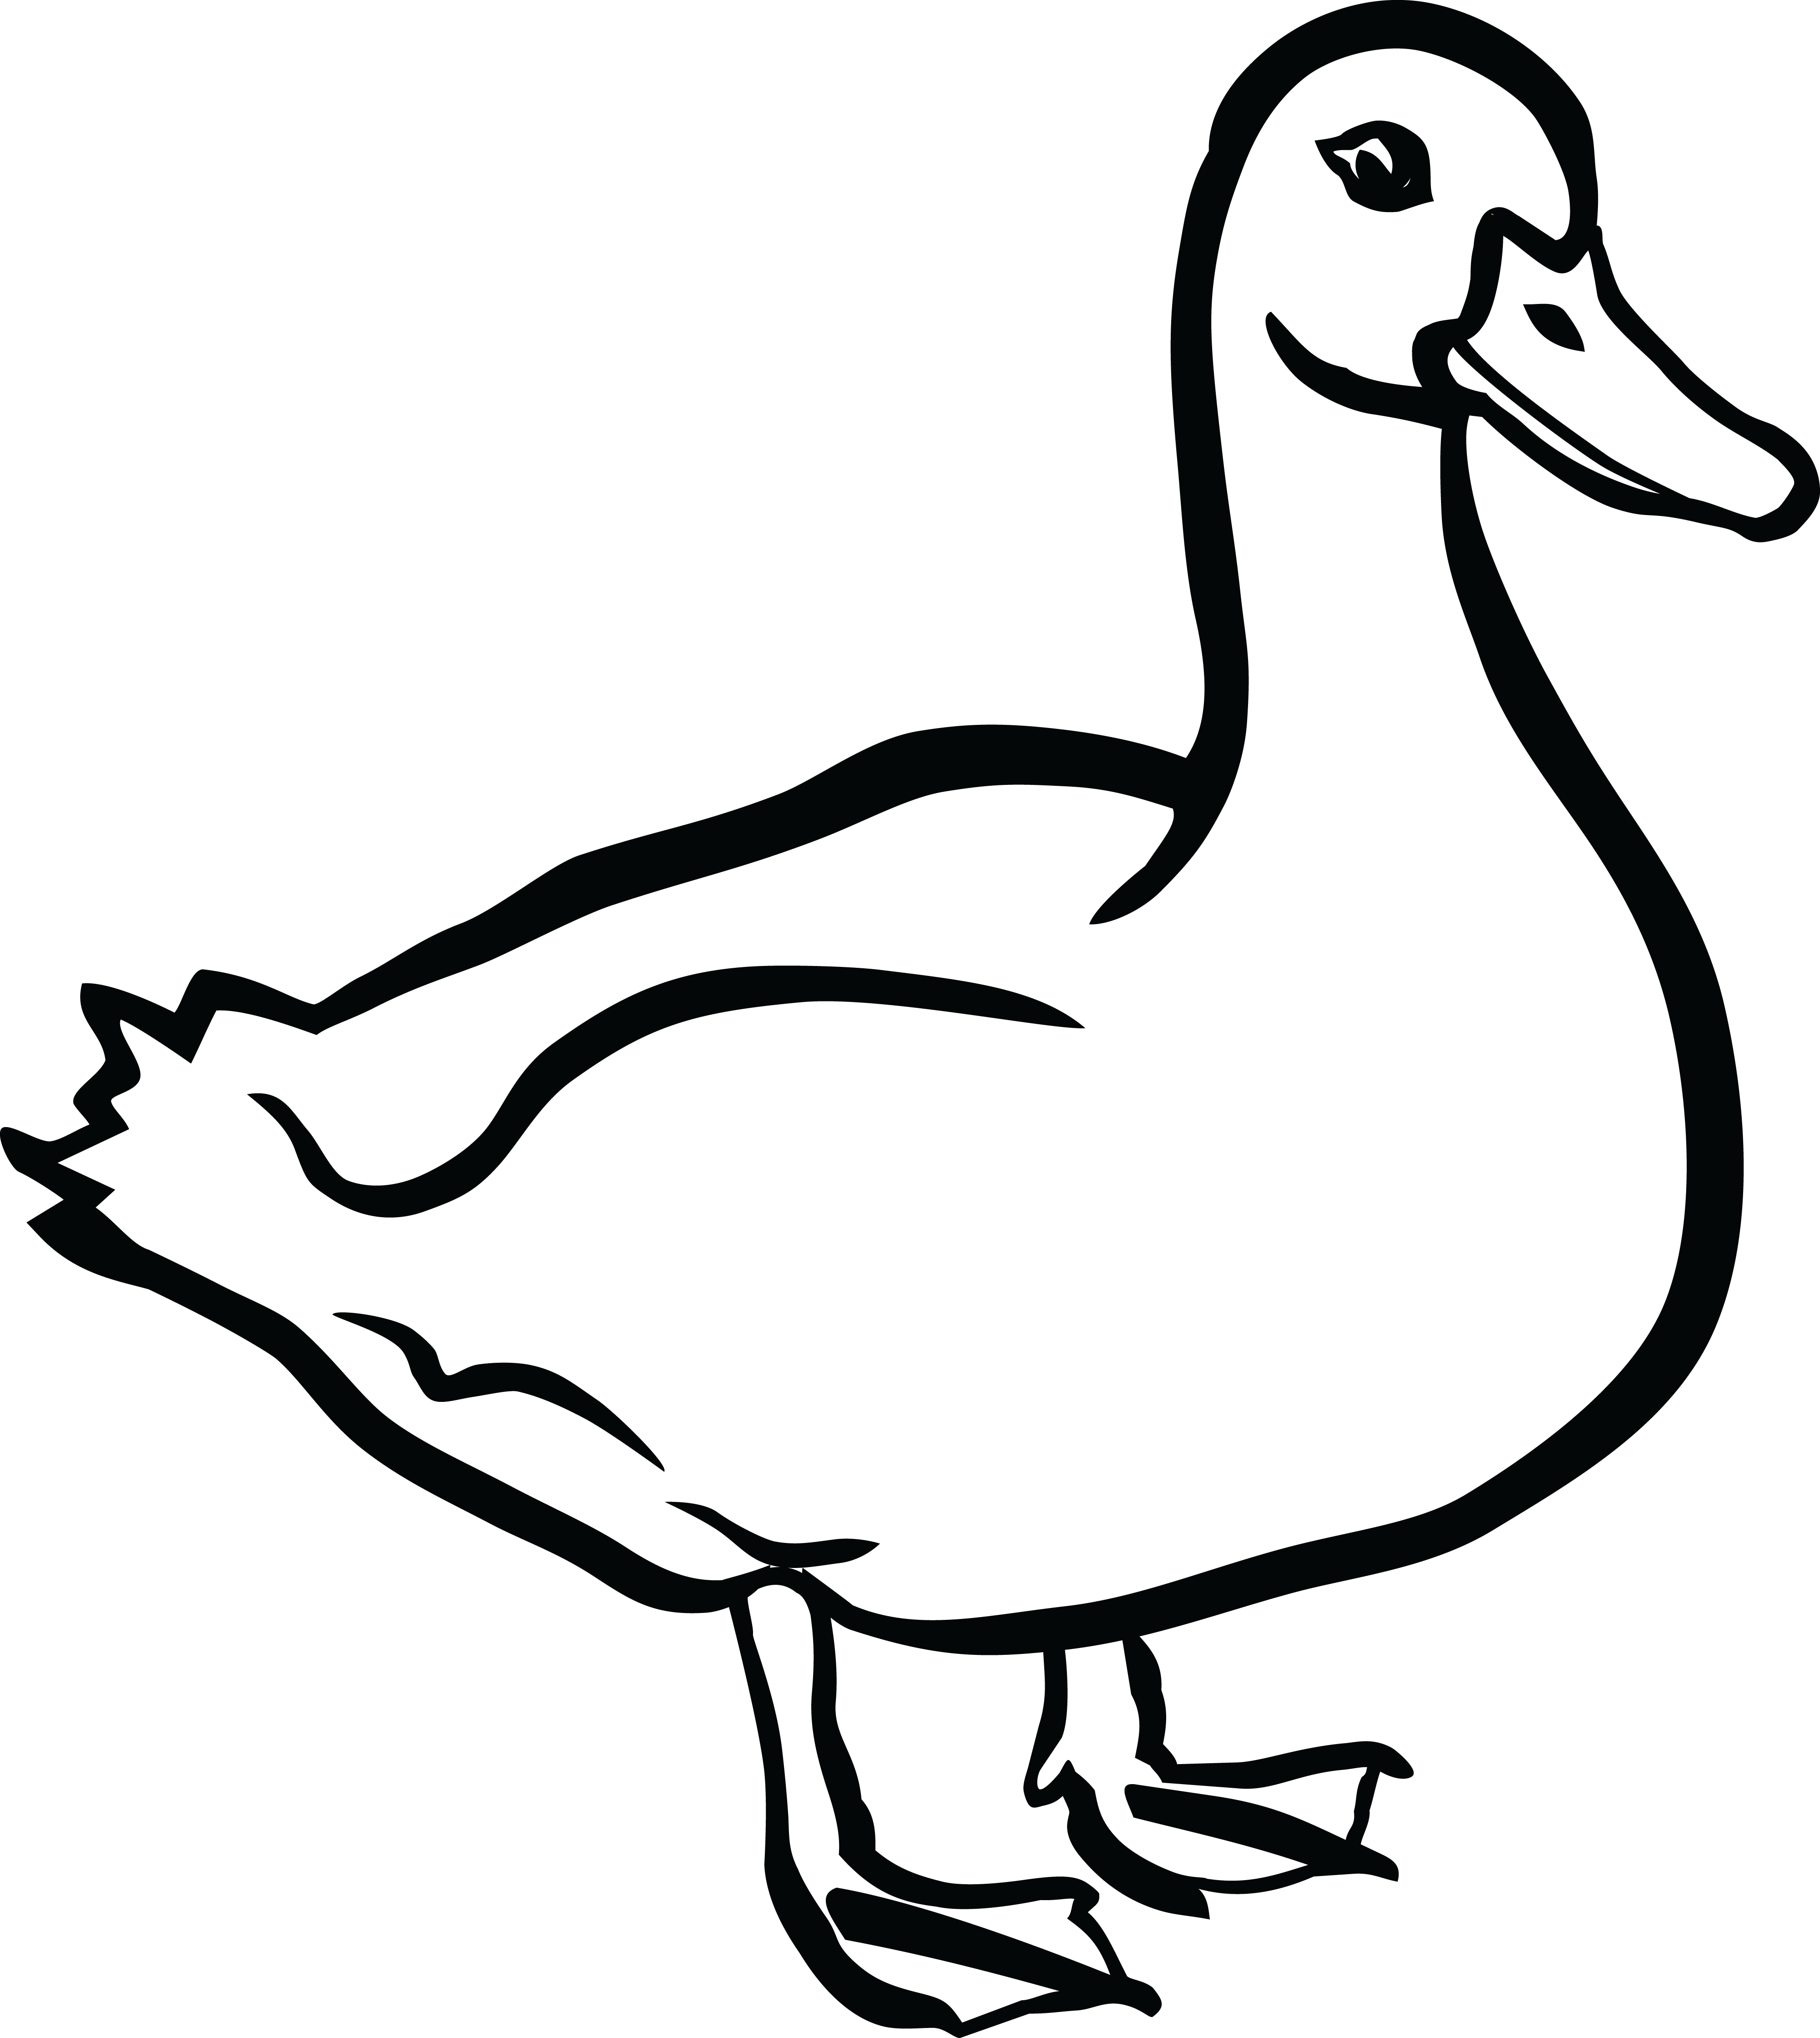 20 Chicken Clip Art Black And White Duck Ideas And Designs